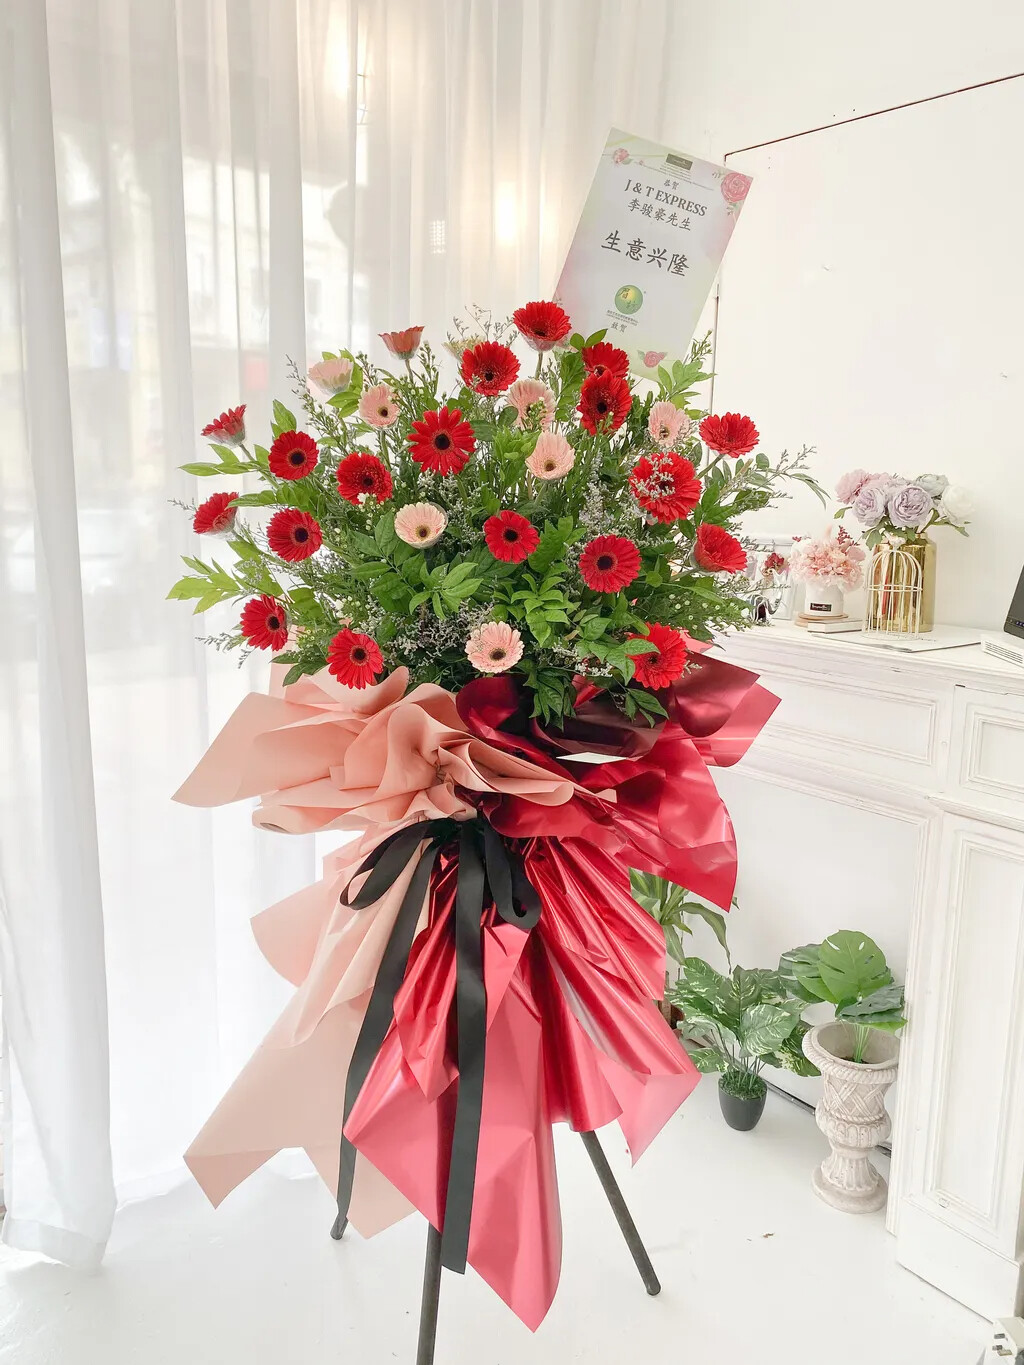 Gosze Opening Flower Stand (By: Temptation Florist from Seremban)